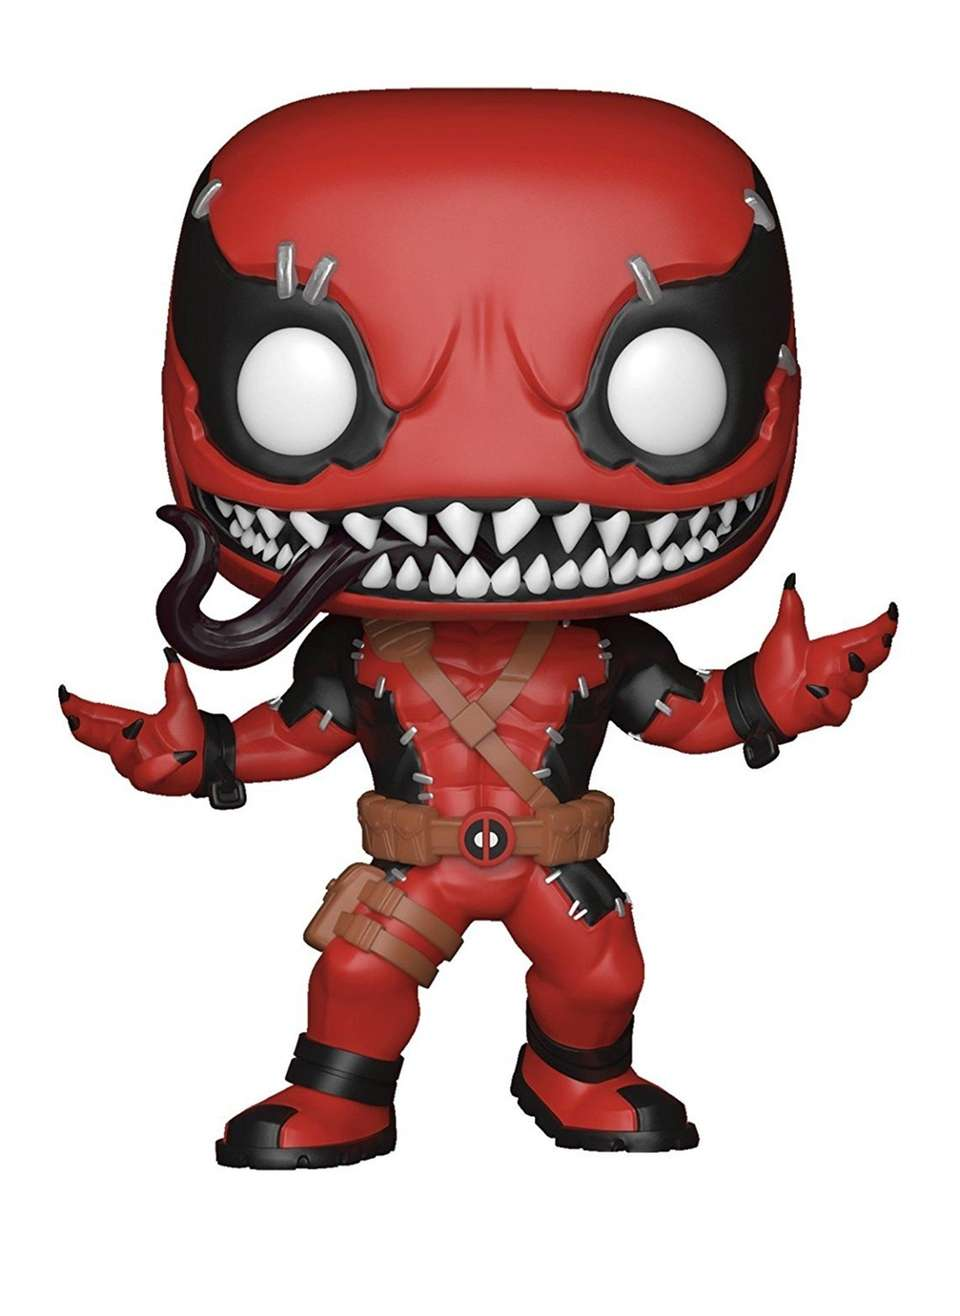 Scheduled for a Feb. 22 release, the Funko